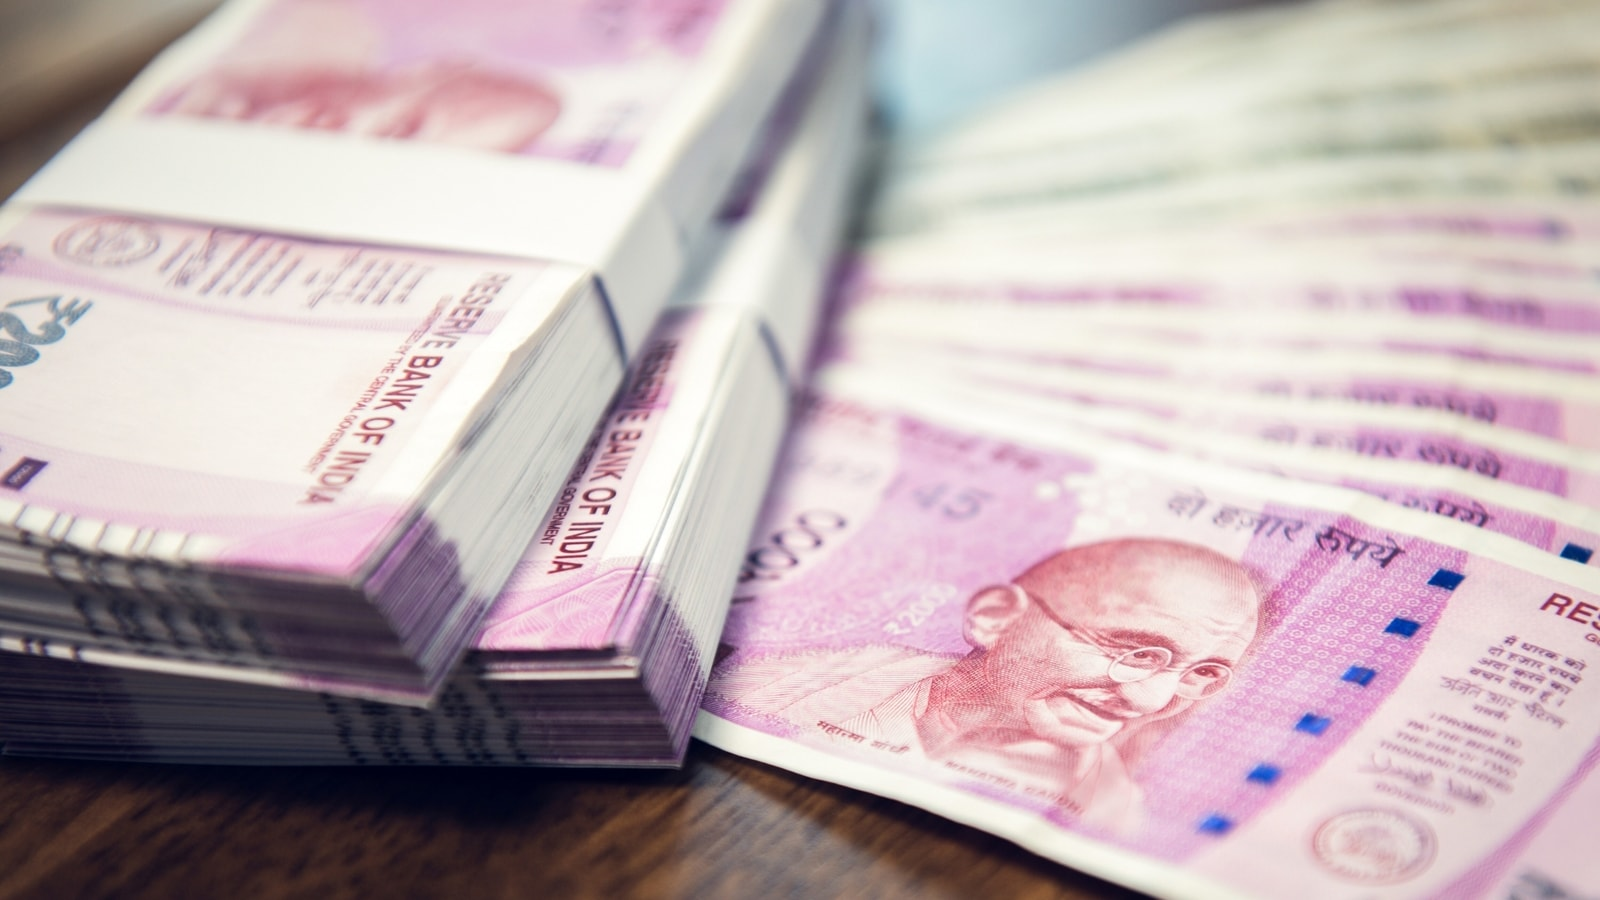 Mumbai woman police officer gets bail after held by ACB in bribery case